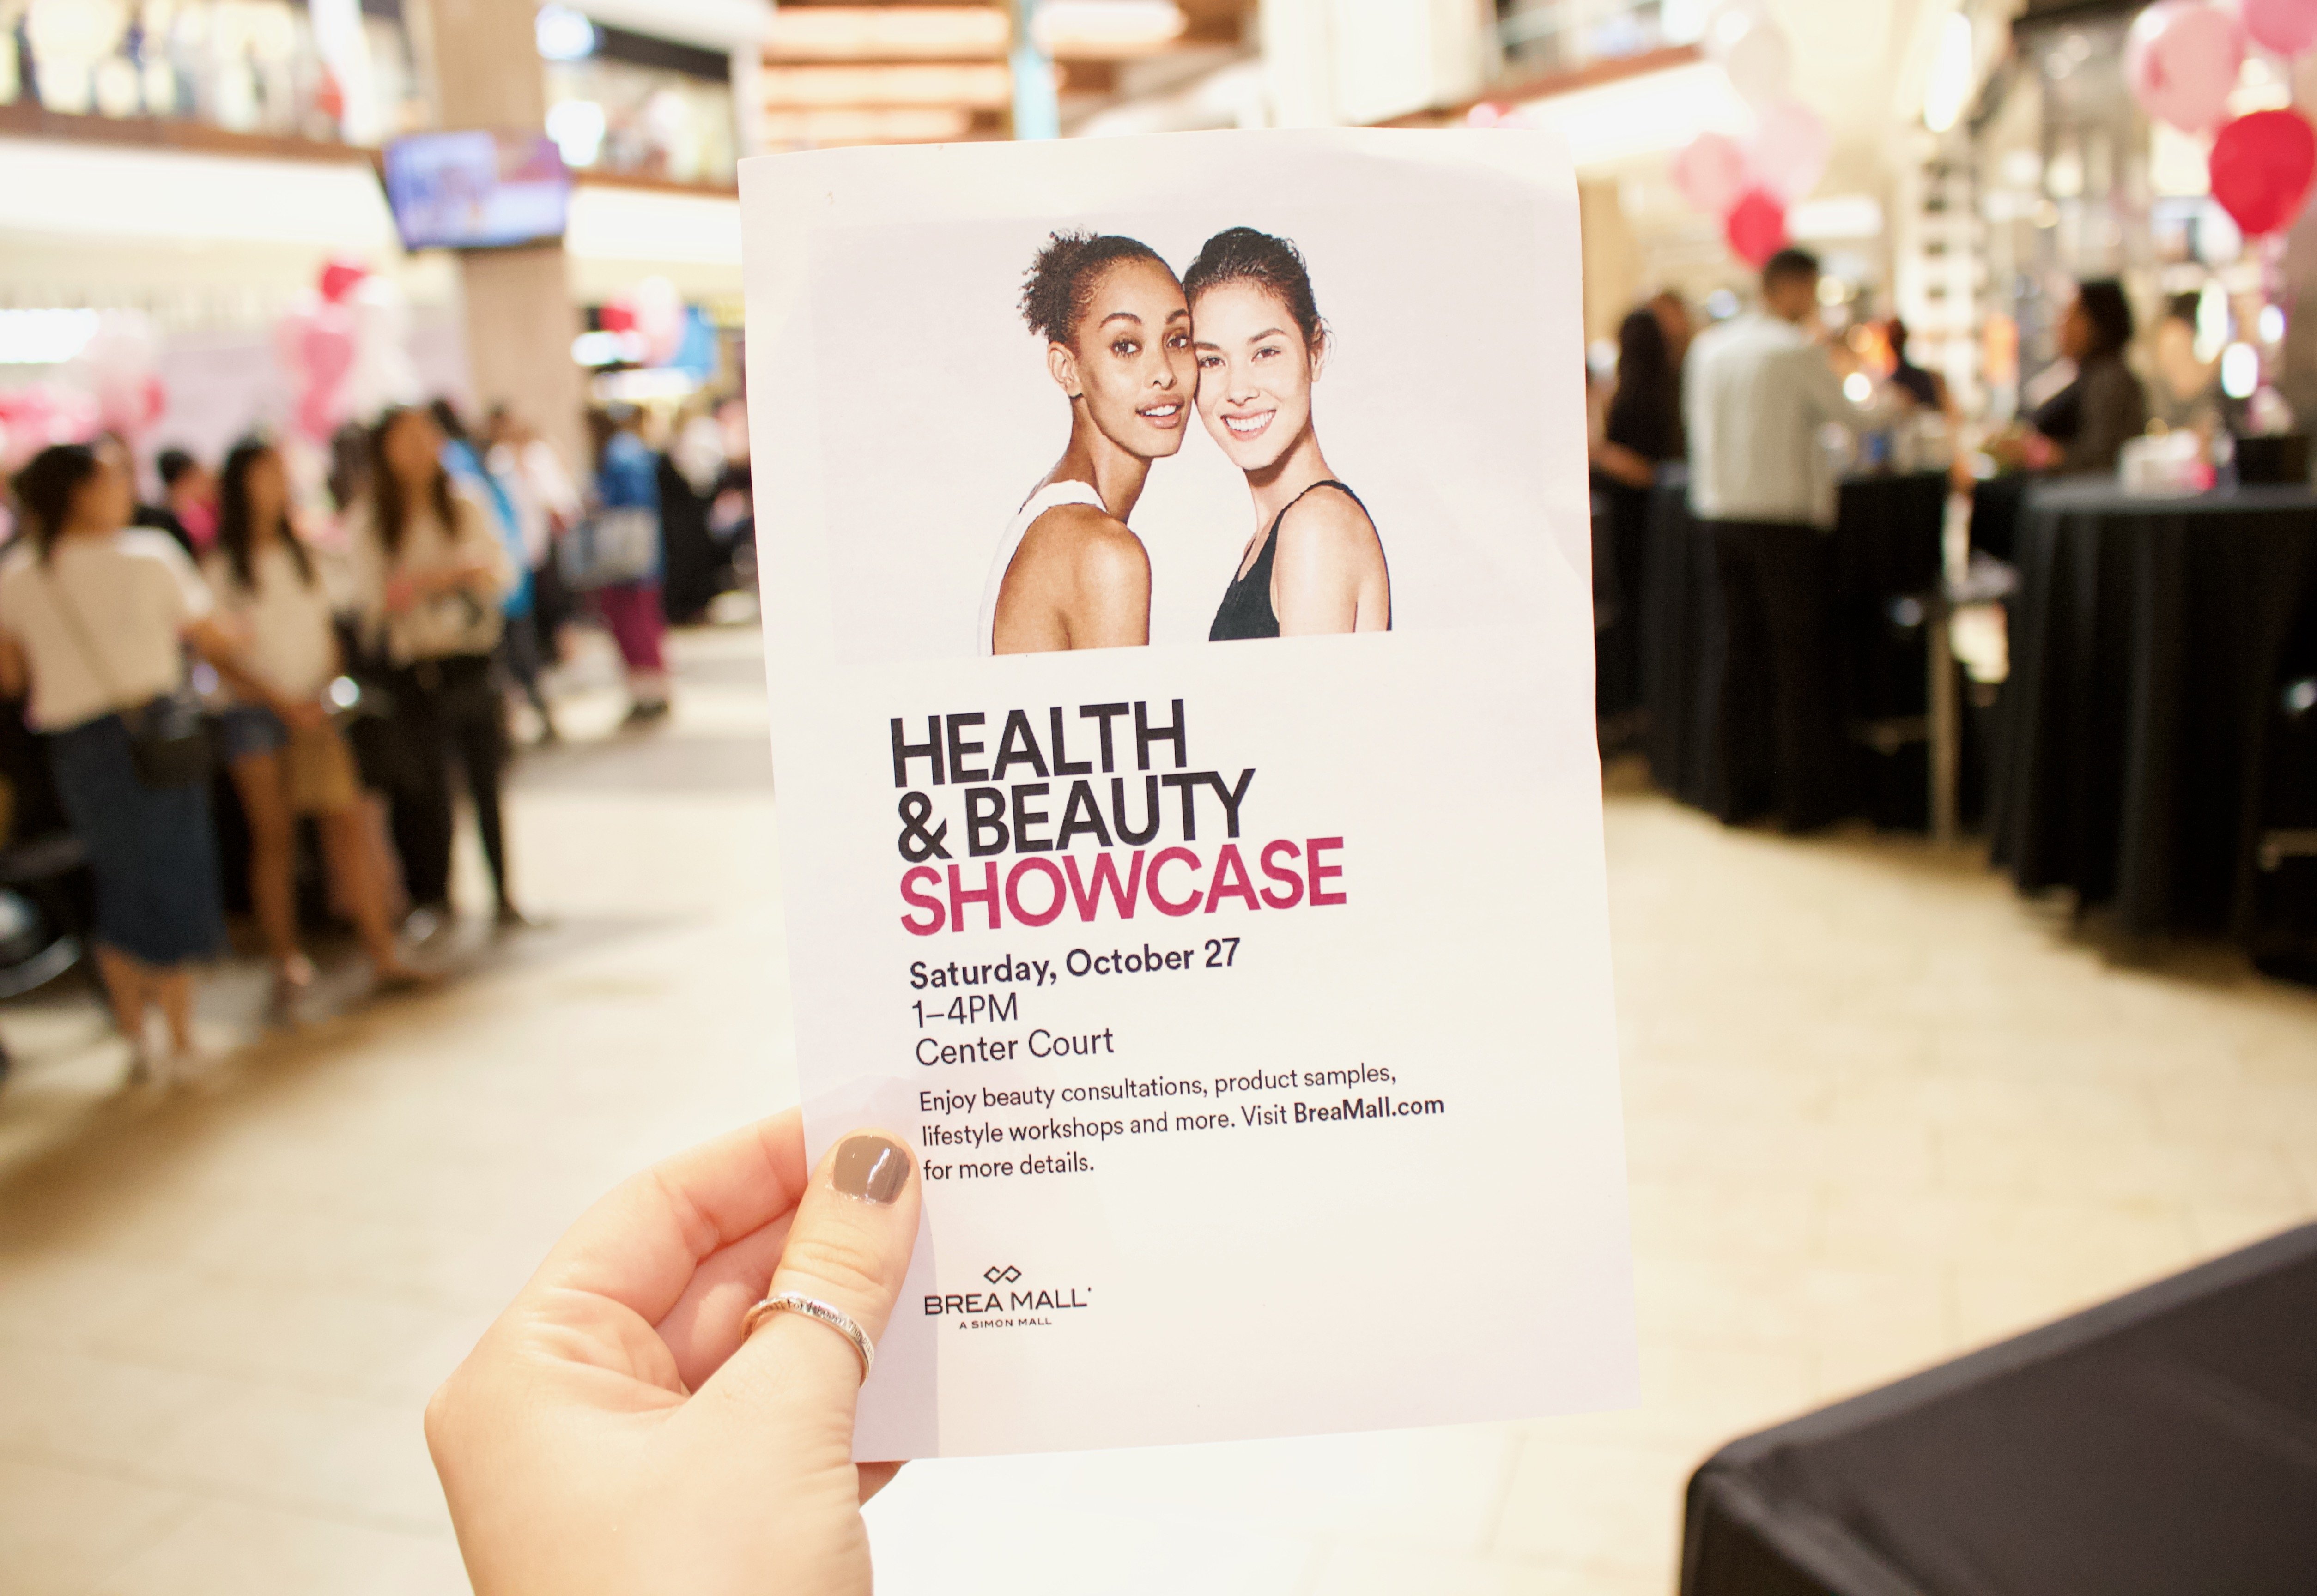 Brea Mall Health & Beauty Showcase